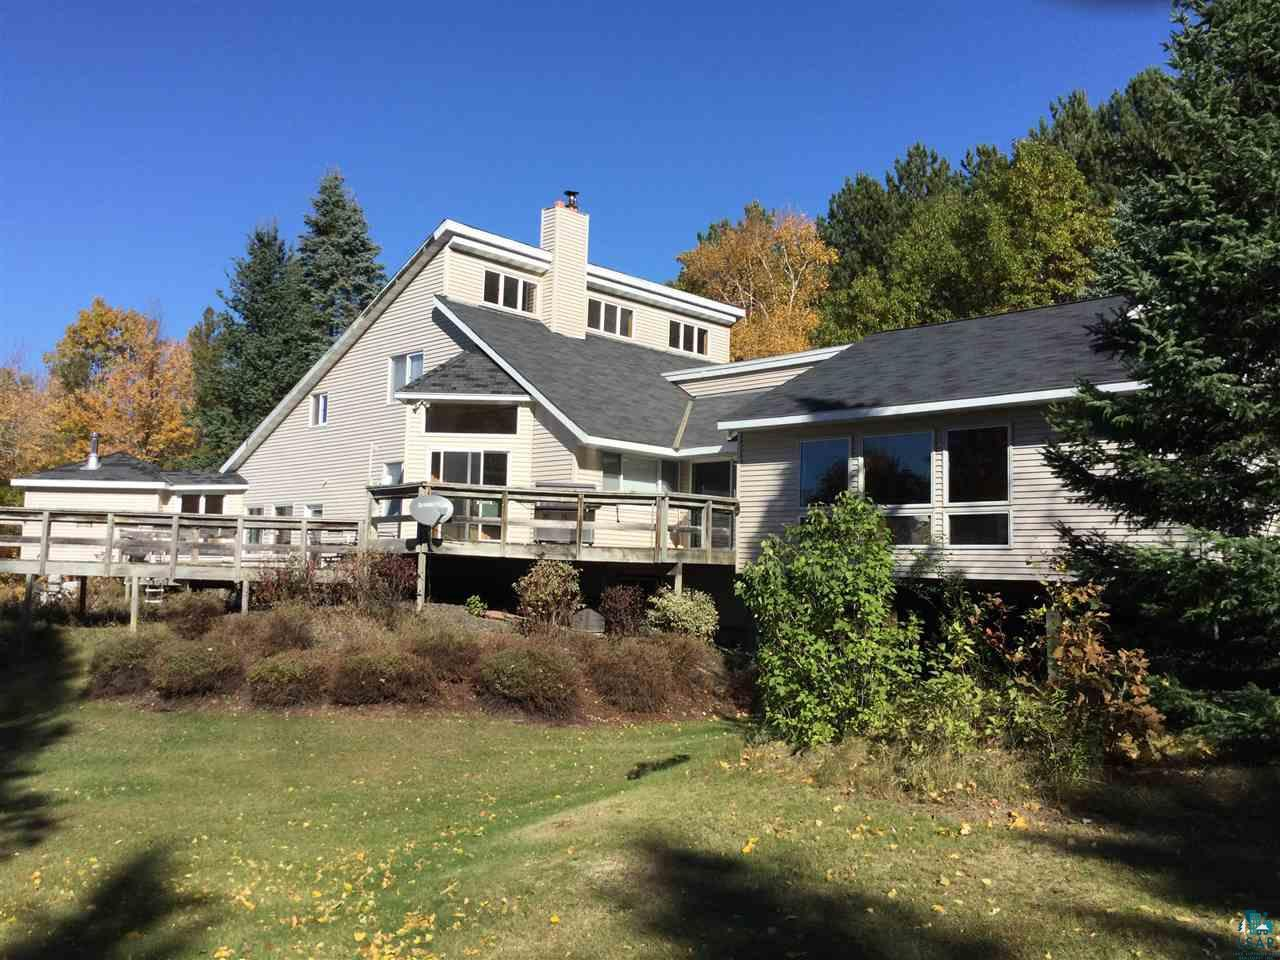 Spectacular west facing views of Lake Superior. Less than an hour commute to Superior & Duluth. This spacious home offers privacy located just outside Port Wing near Lake Superior & the Port Wing Marina on 30 forested acres. The main floor features an open living room/dining room/ kitchen, an added spacious family room with fireplace , second dining area & bar,a main bedroom, laundry room, attached two car garage, sauna & hot tub room, lots of closet space, & walk out decks. Gorgeous lake views from the second floor which features two bedrooms, an office space, & a bathroom.  The walkout basement features a bathroom, utility room, several rooms currently used as a bedroom, rec room, & den. The outside features gravel driveway, maintenance free exterior, decks, & fenced in gardens. There is  a large 26x 42 + 20 x 22 Pole Barn with two garage doors & a large sliding door, wood stove for heat, concrete floor, electricity, and a workshop area.  There is a 16 x 36 concrete pad with a shelter logic cover for RV storage.